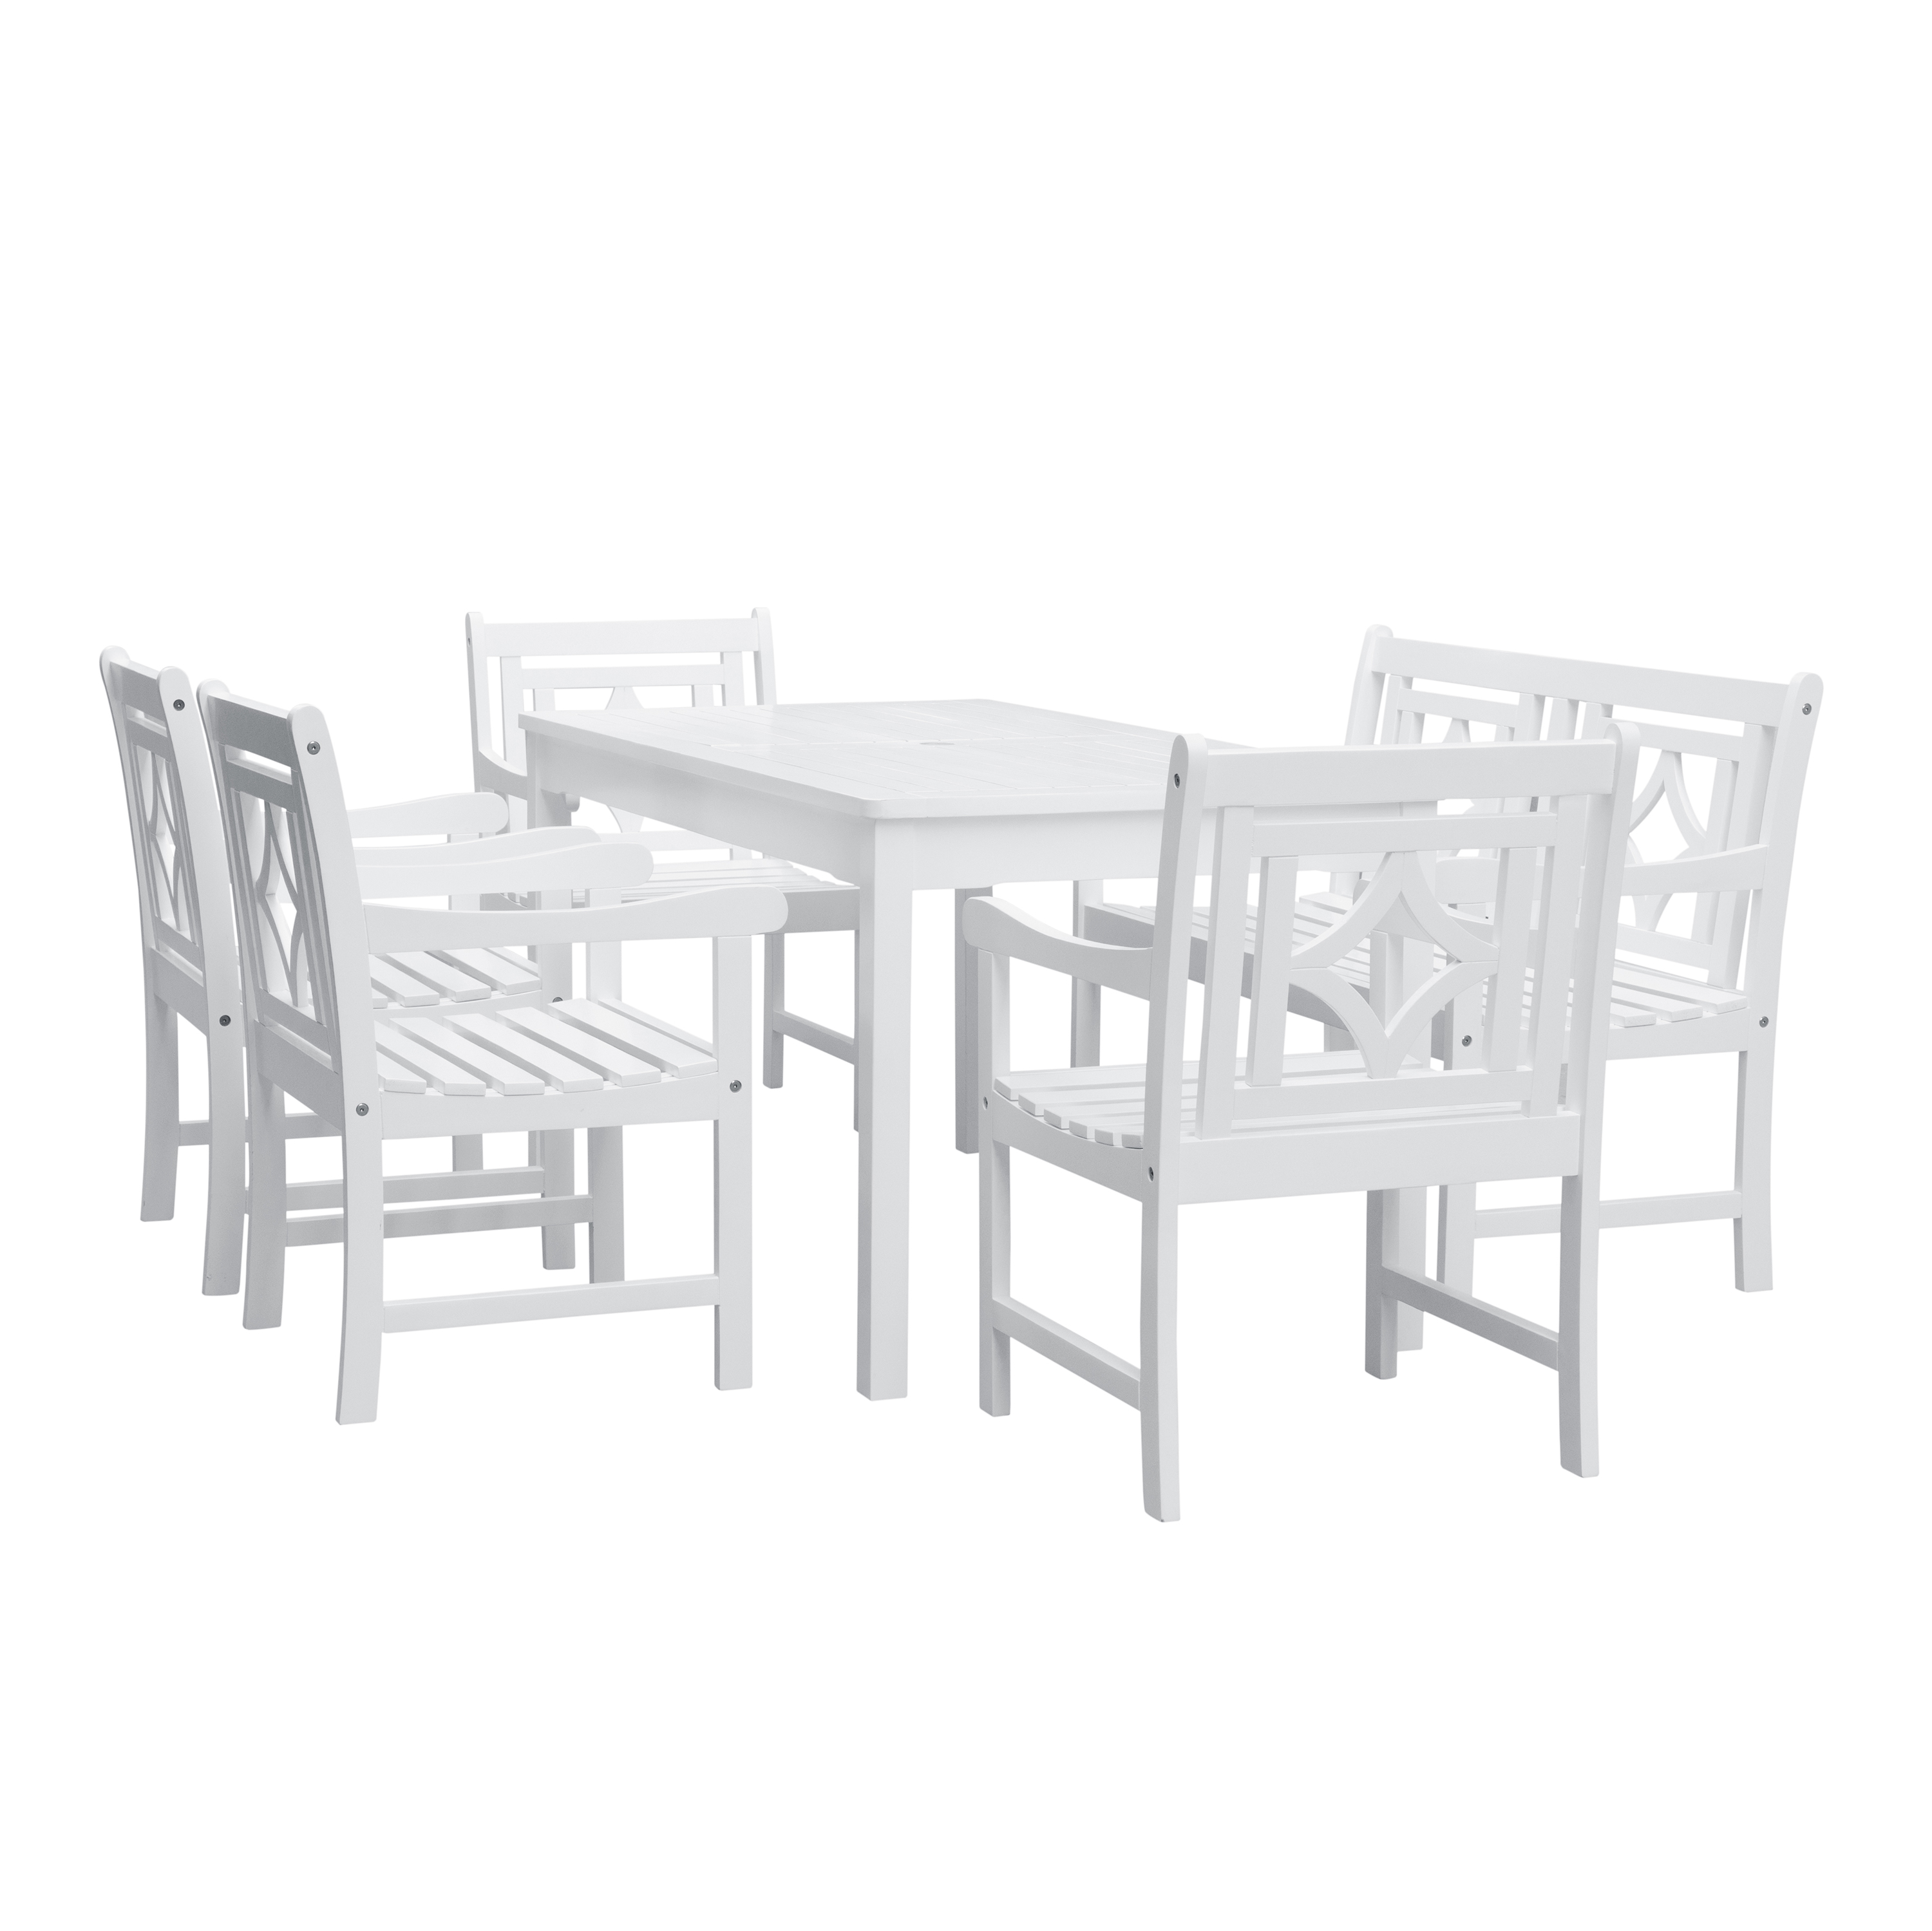 Bradley Outdoor 6-piece Wood Patio Rectangular Table Dining Set